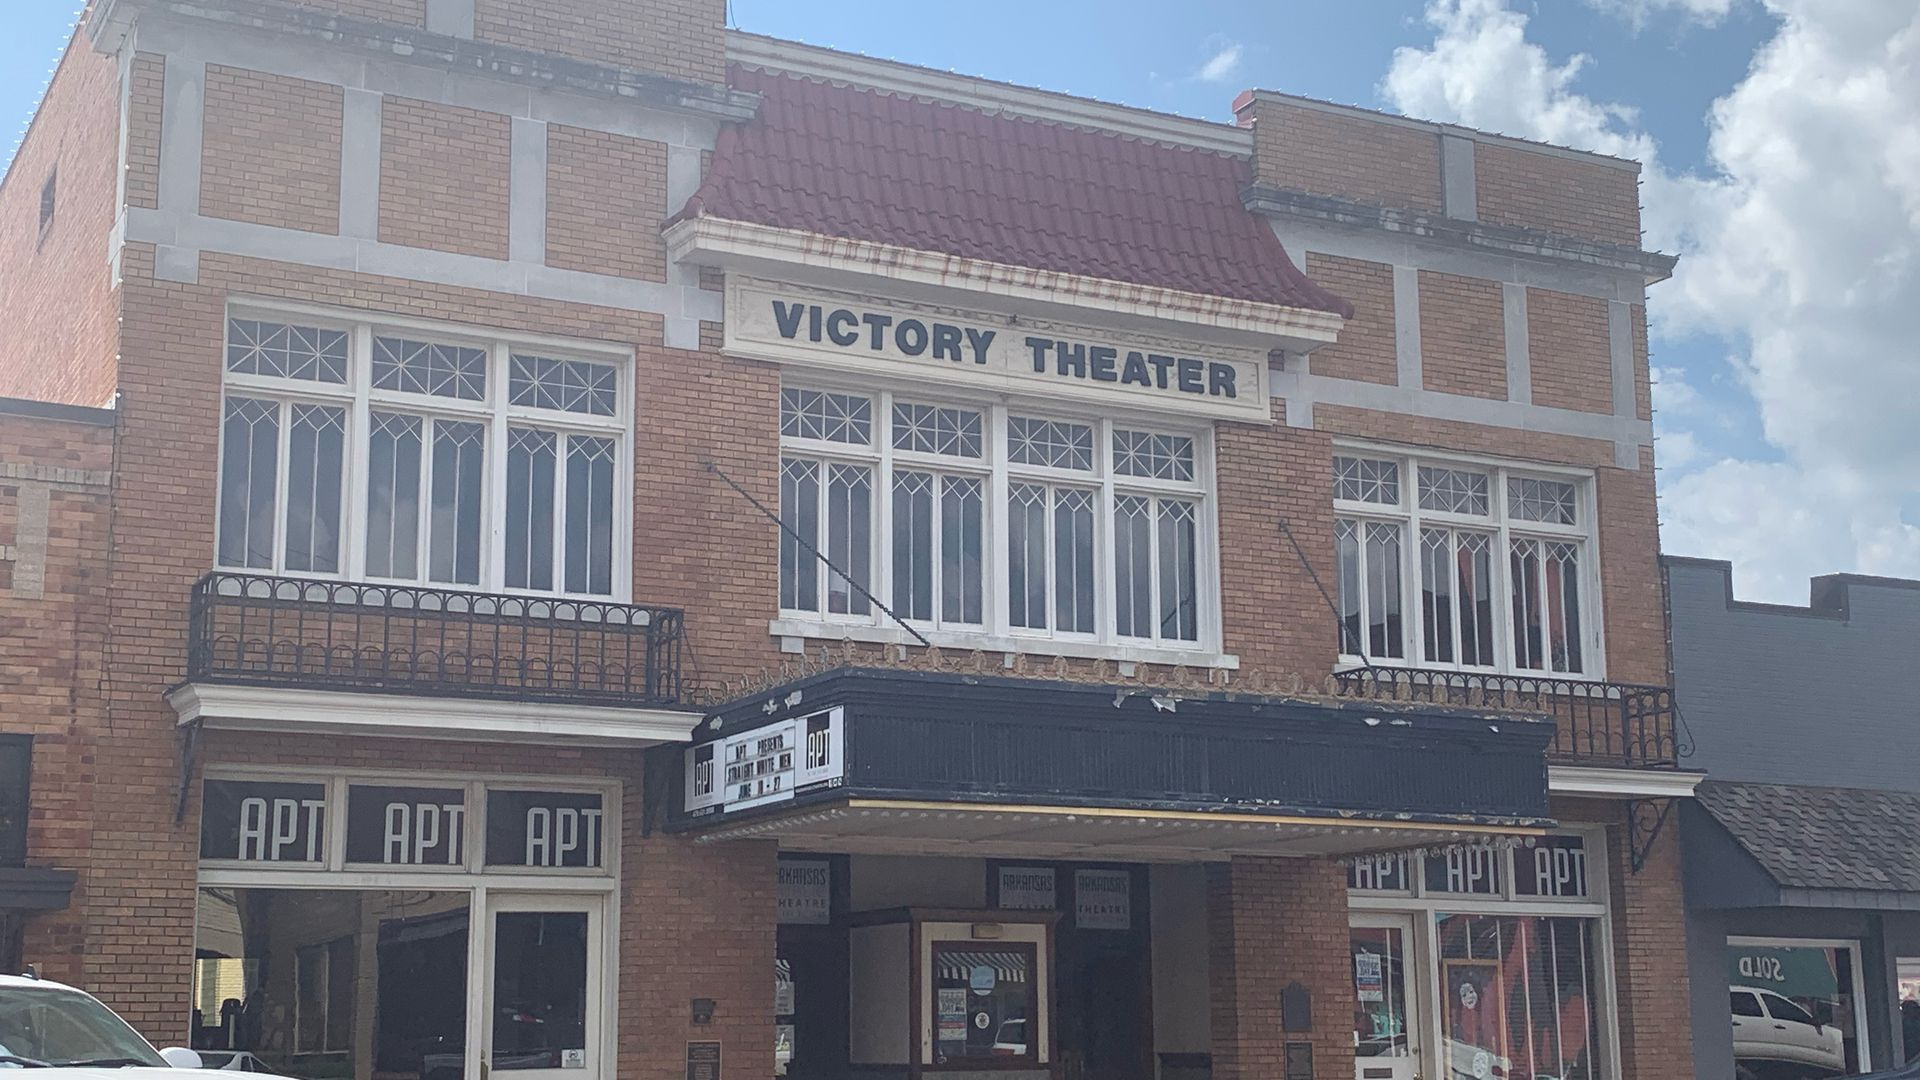 The outside of the Victory Theater building